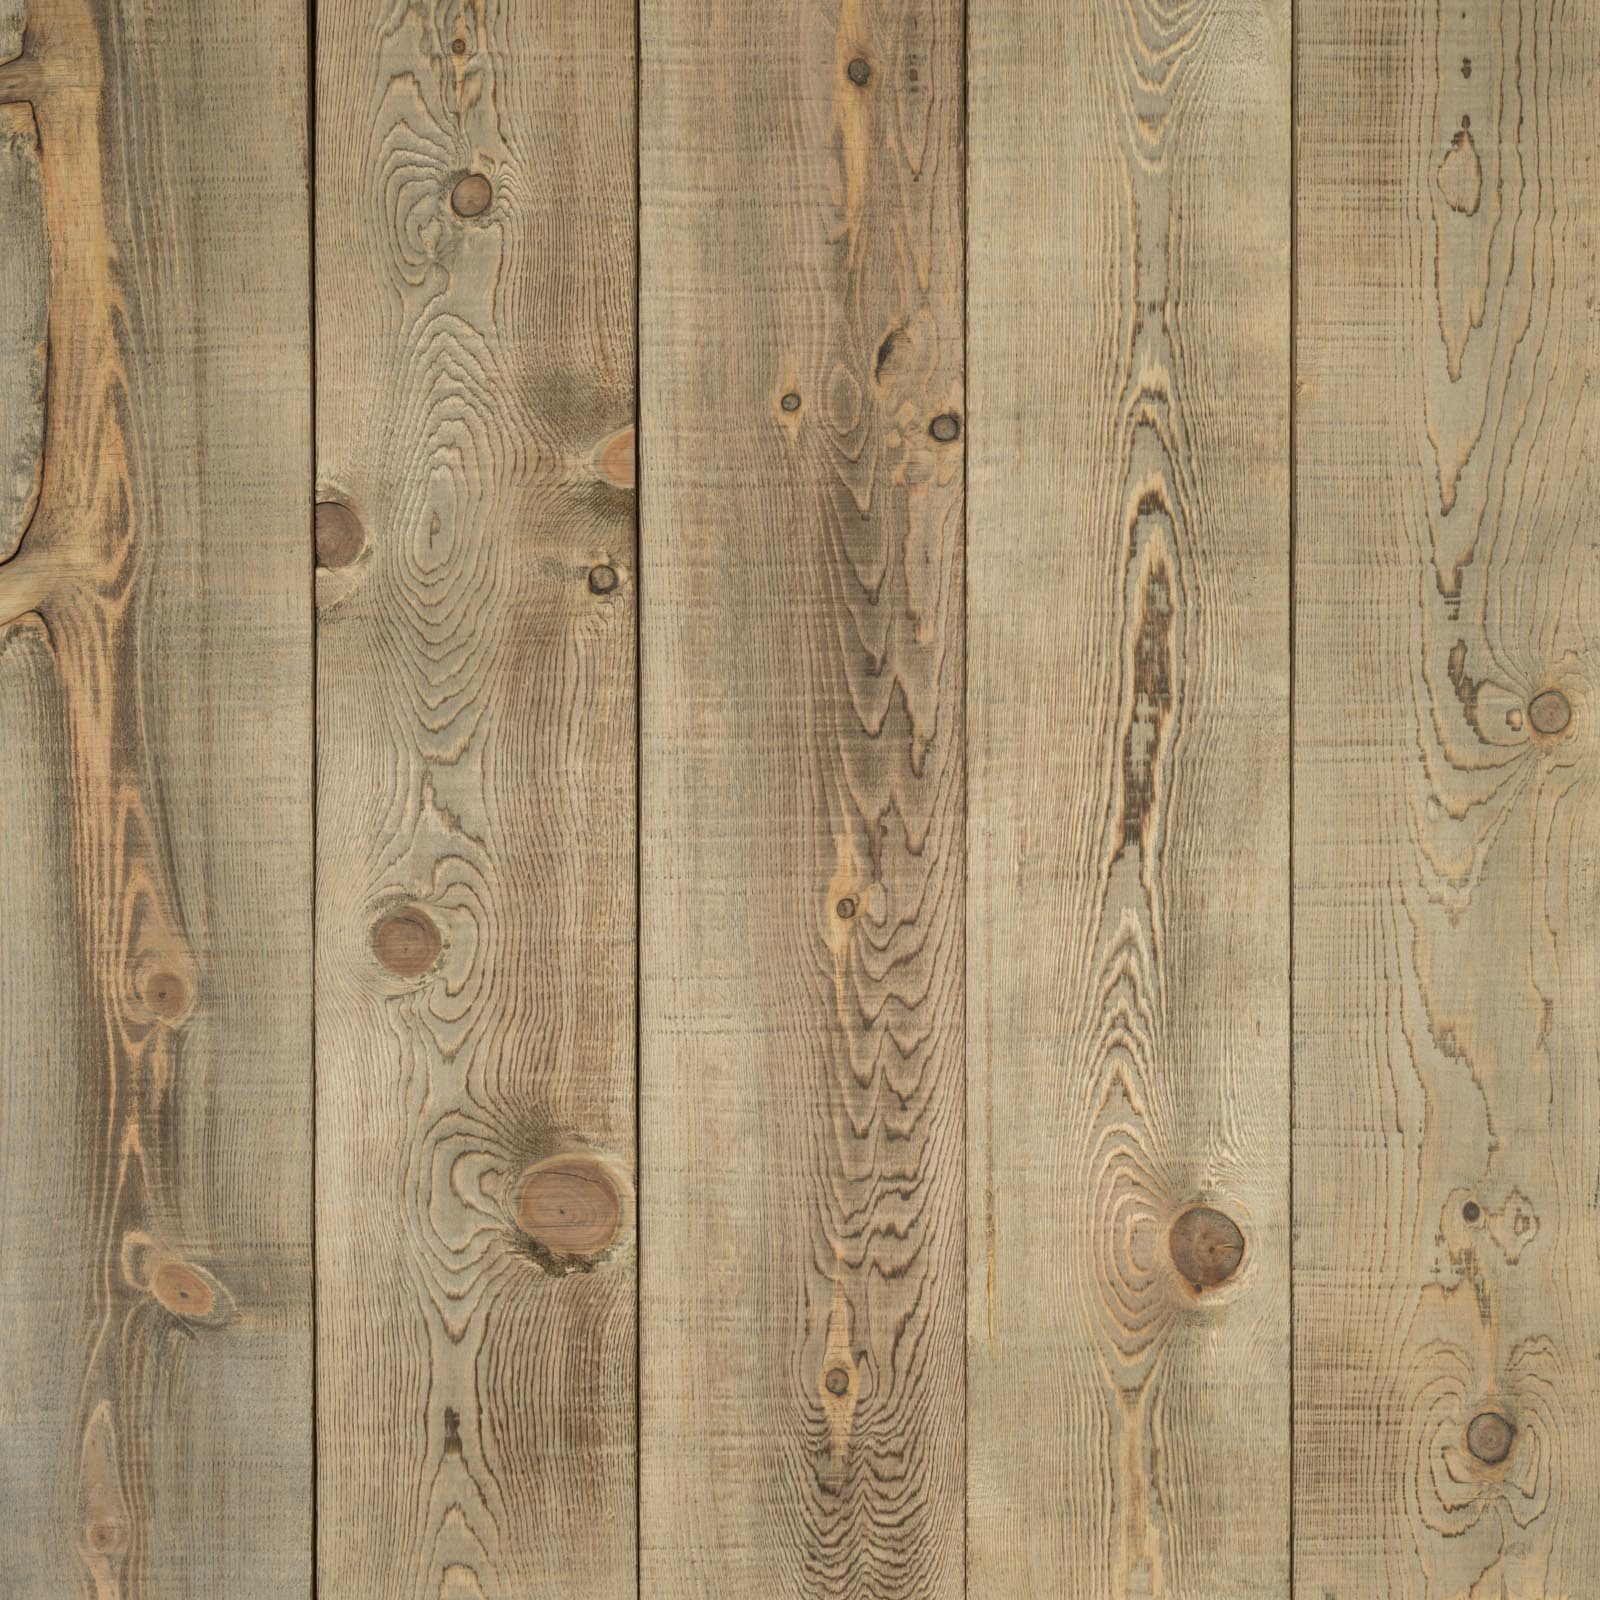 Driftwood Pine Boards Hewn